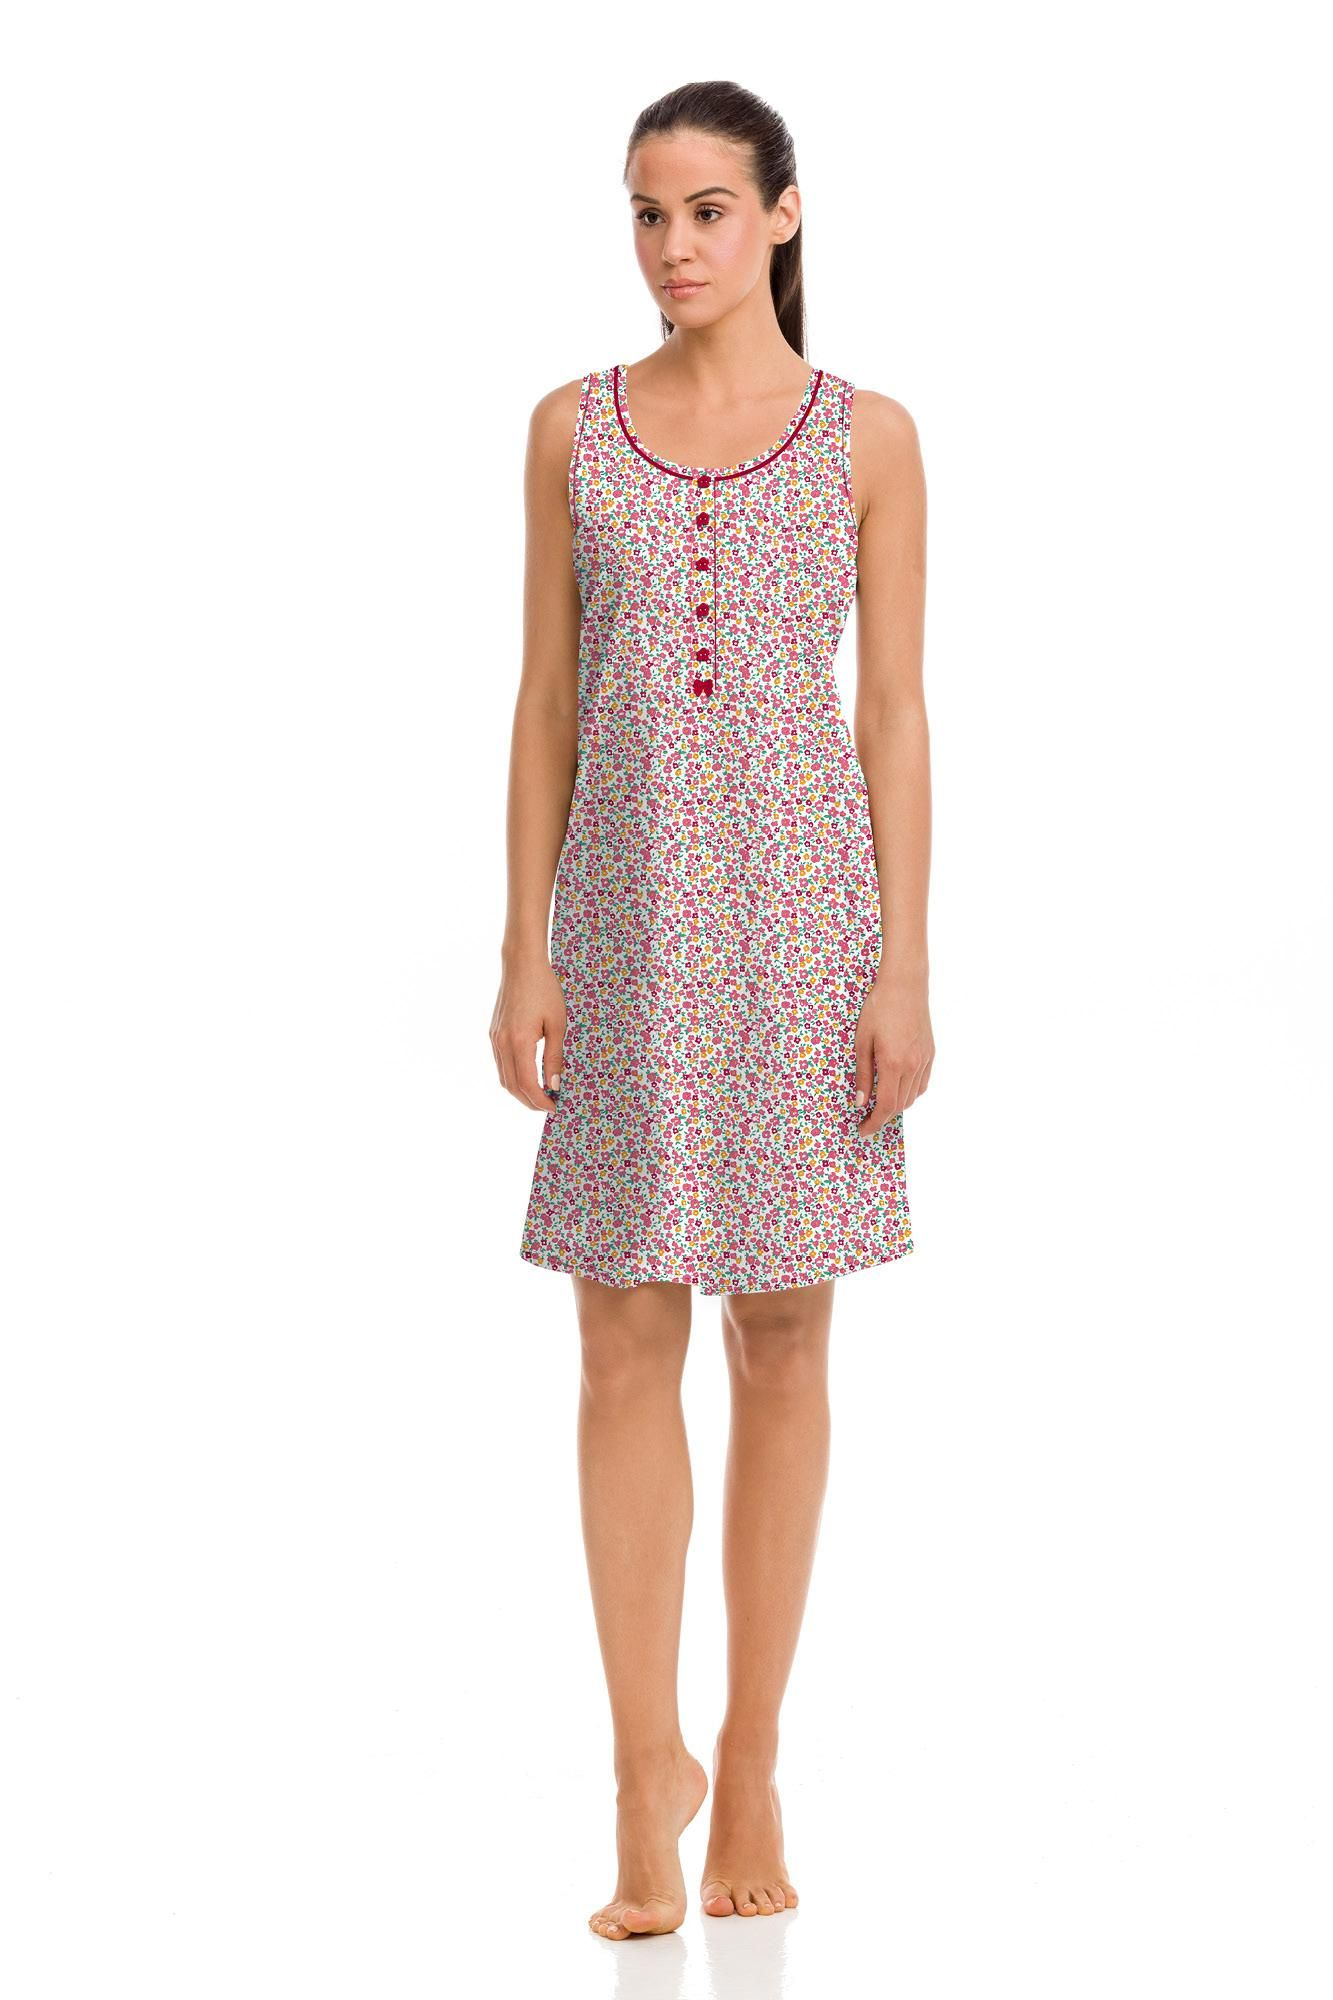 Sleeveless Nightgown with Buttons